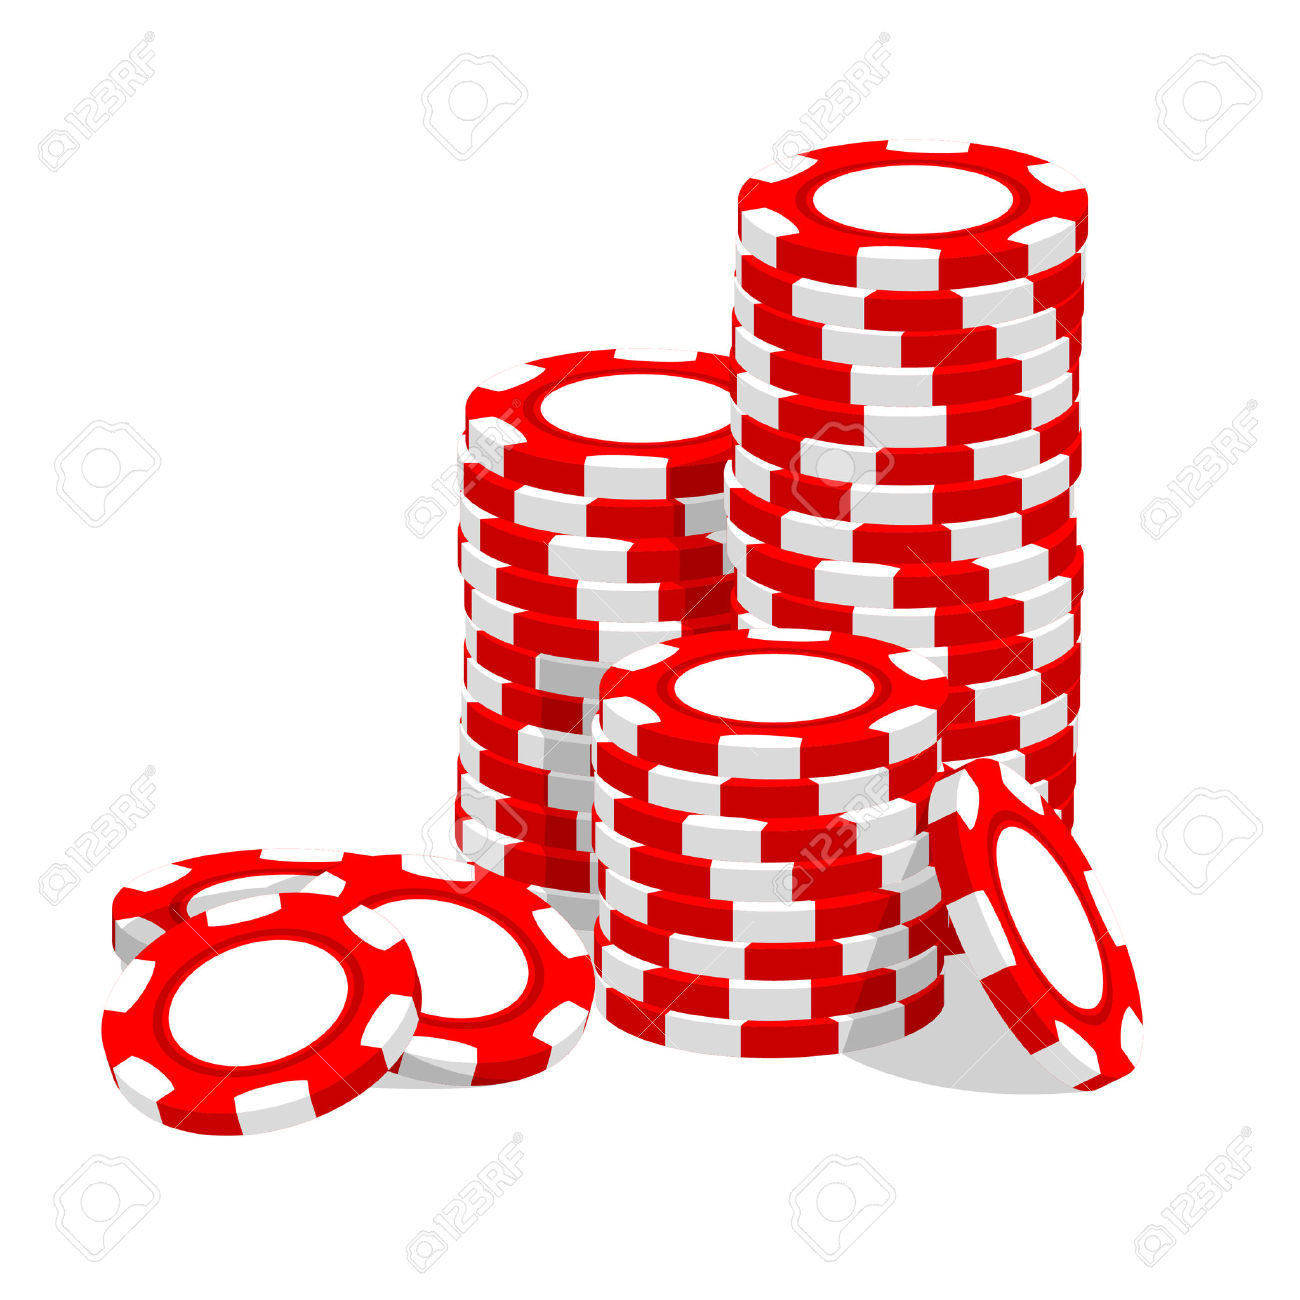 Black and white poker chip stack clipart png library library Poker Clipart | Free download best Poker Clipart on ClipArtMag.com png library library